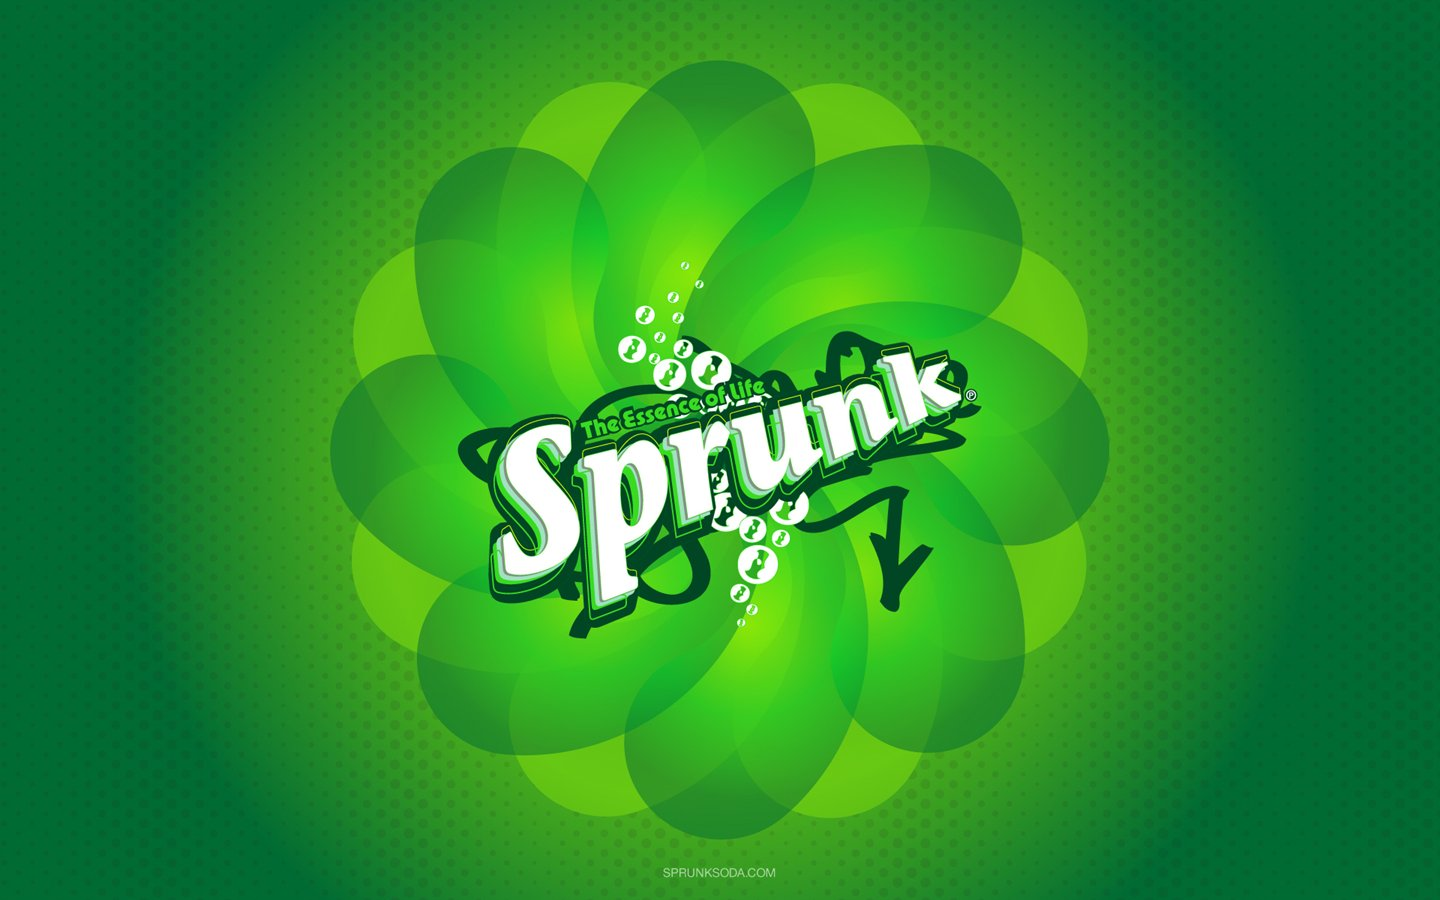 Sprunk drink factory logo wallpaper 18533